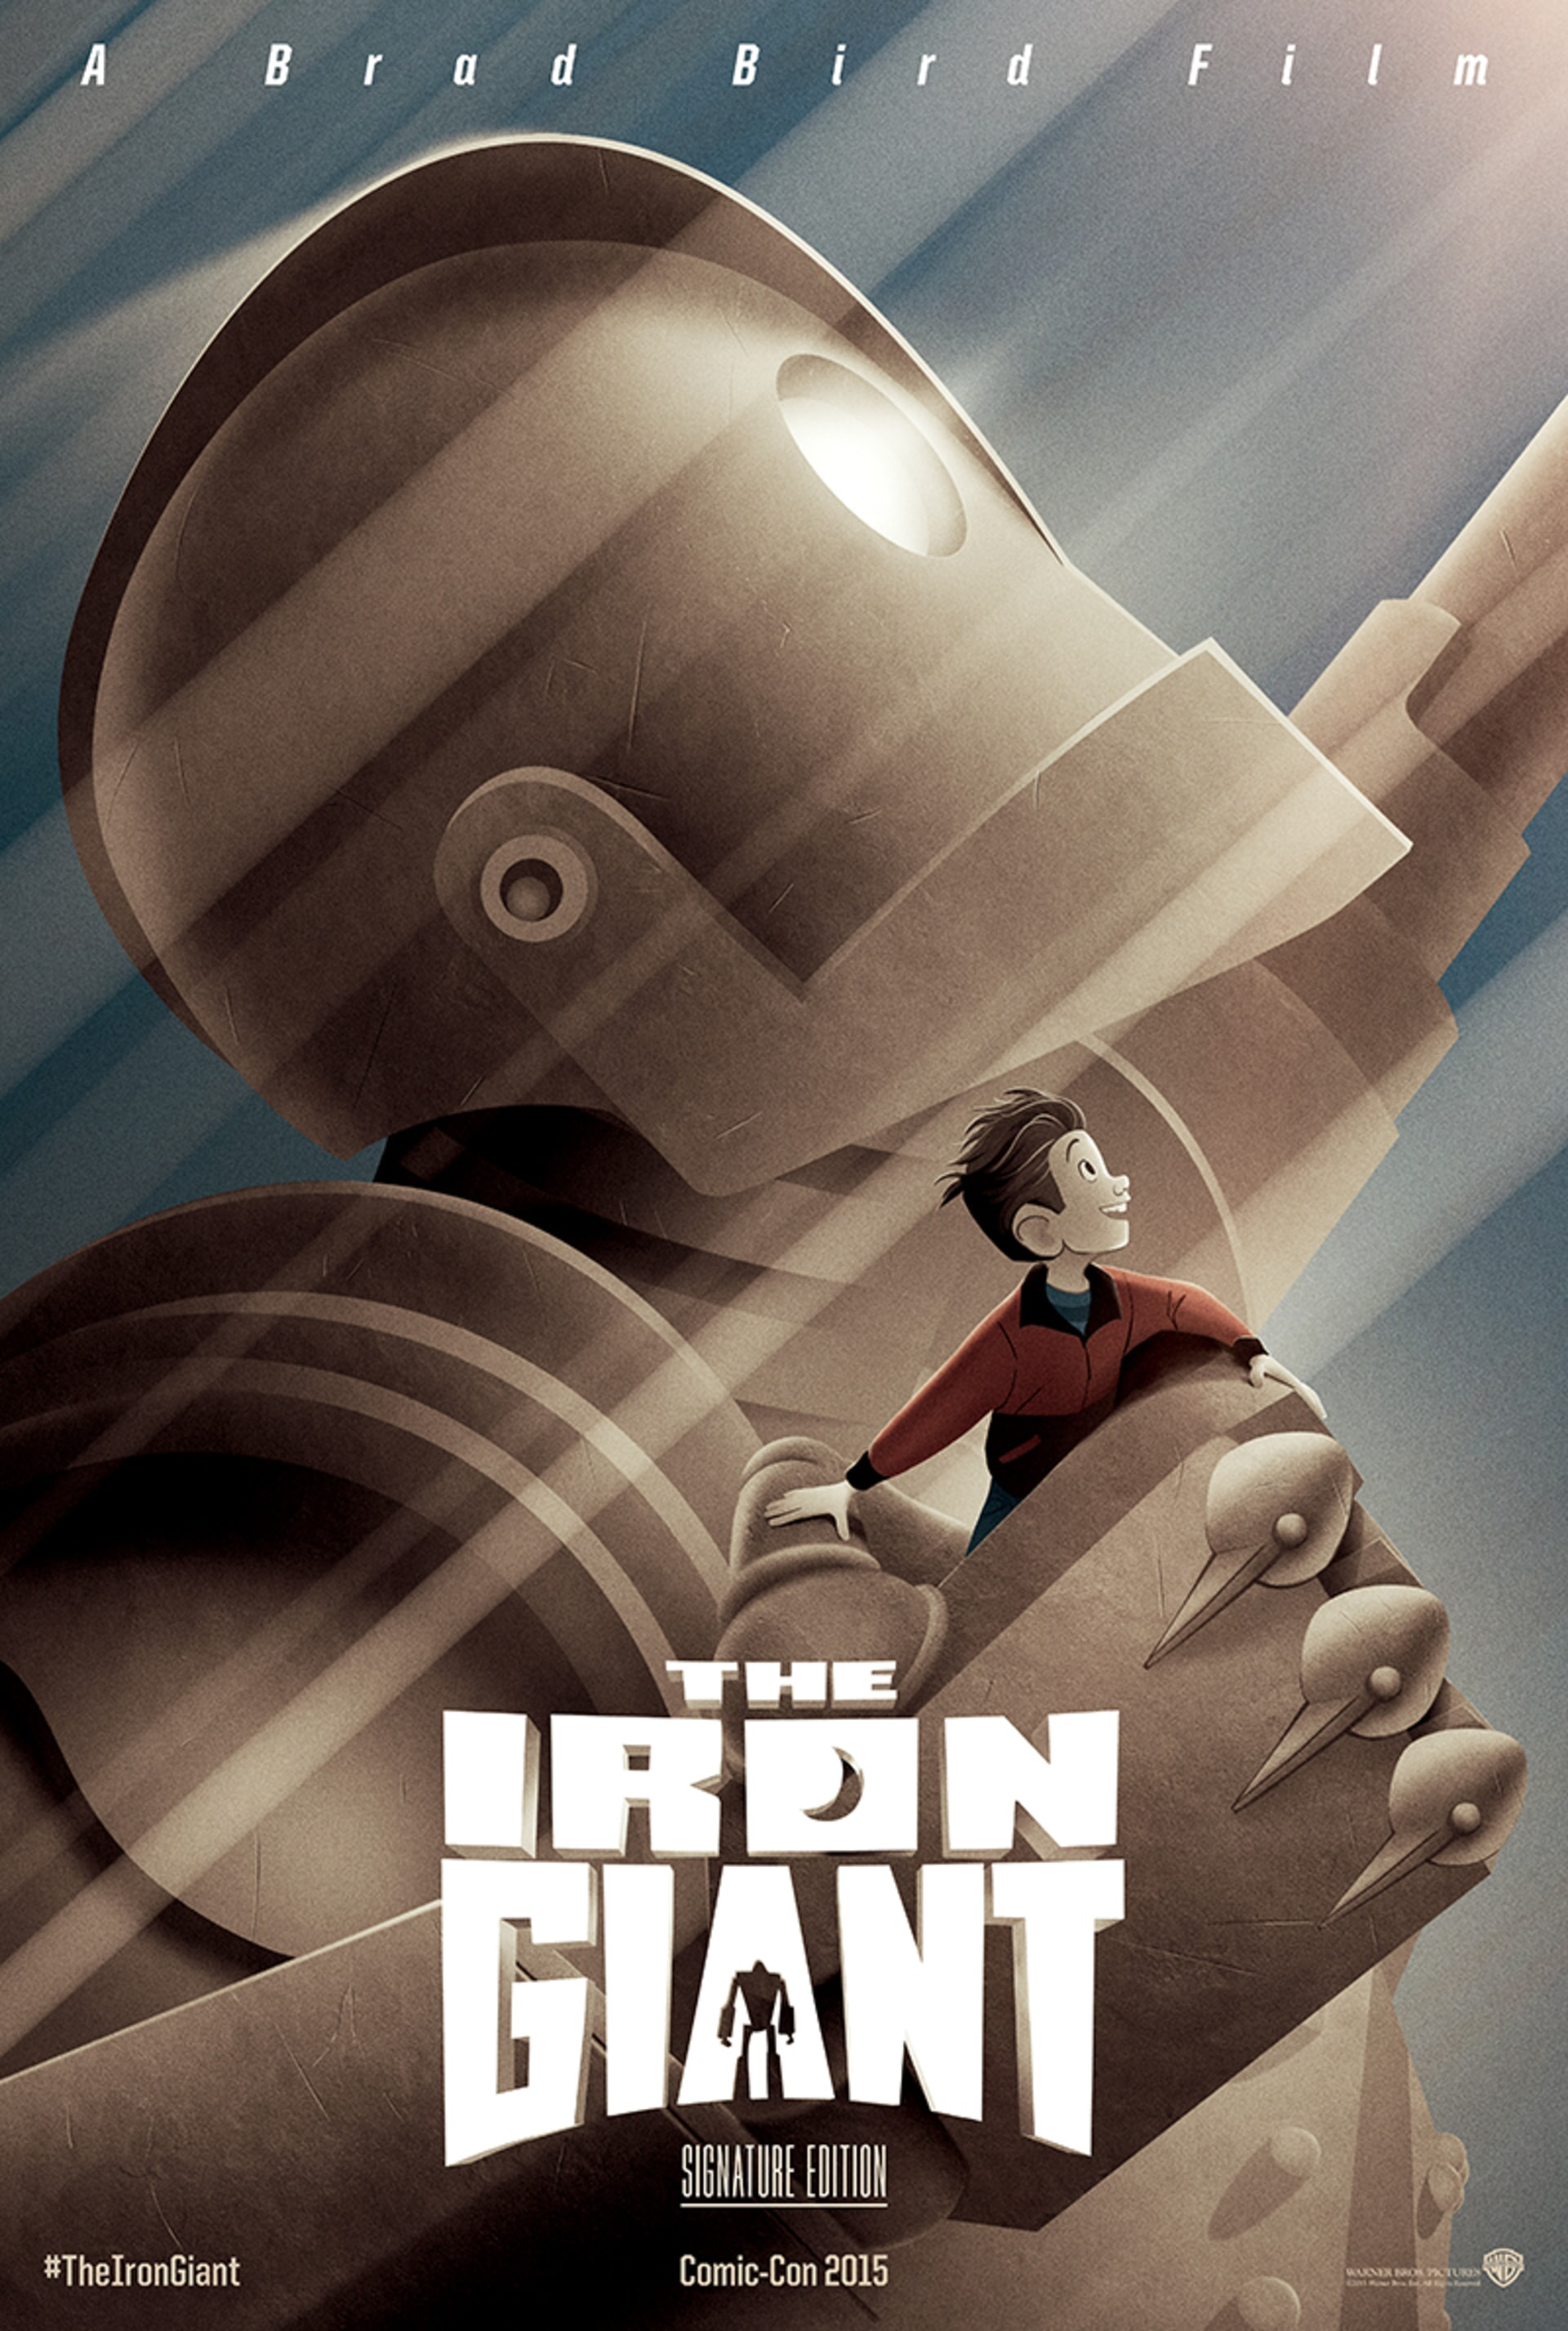 The Iron Giant: Signature Edition - Poster 1